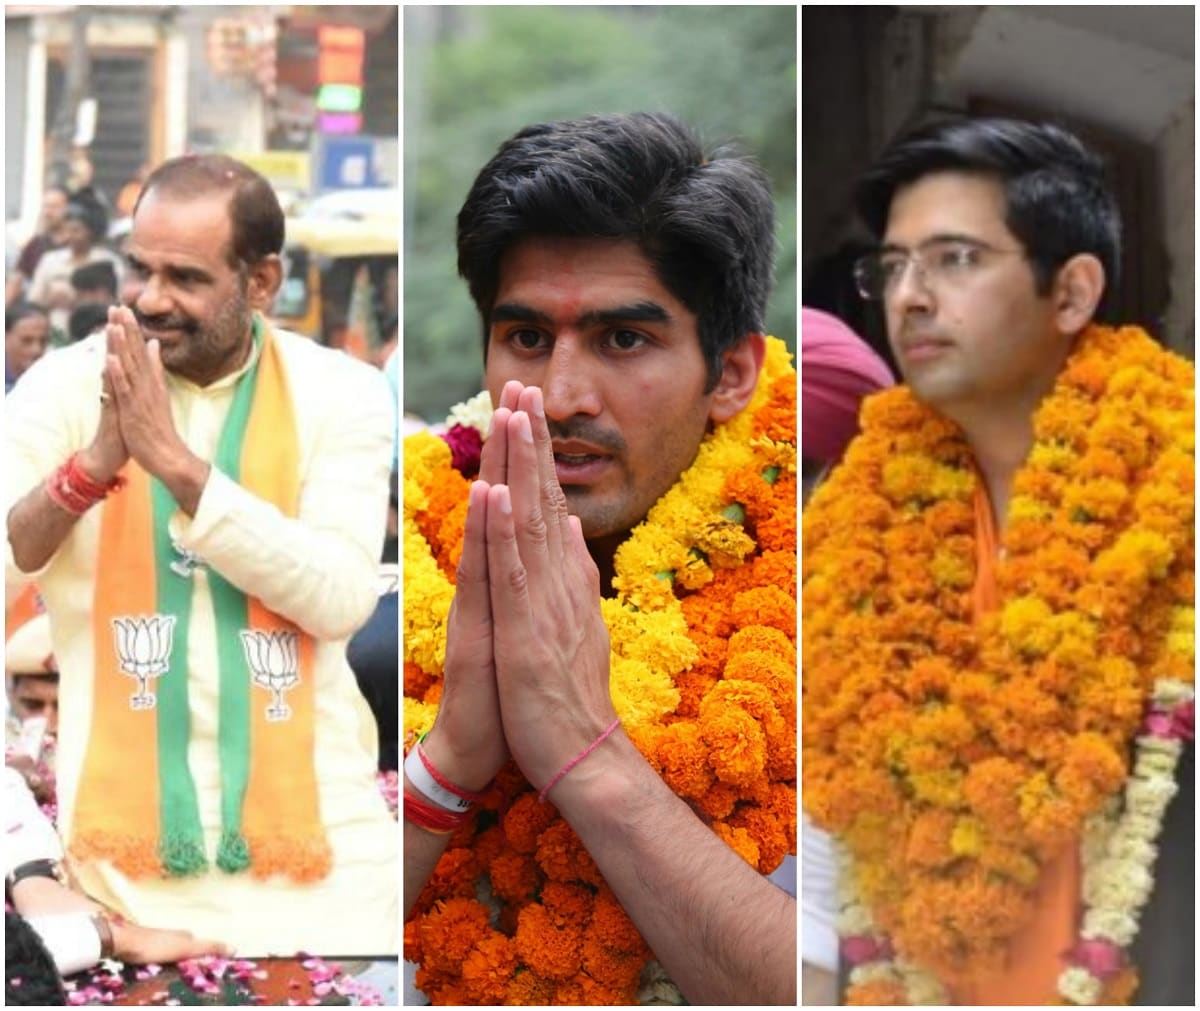 <strong>South Delhi:</strong> Congress candidate Olympic medal winning pugilist Vijender Singh is taking on BJP's seasoned Lok Sabha MP Ramesh Bidhuri and AAP's Raghav Chadha in a constituency with mix of rural and urban voters. Jats and Gujjars along with Poorvanchalis, who hail from eastern UP and Bihar, make a large chunk of 20.67 lakh voters in the constituency. In 2014, Bidhuri, a Gujjar, managed to win against AAP's Devinder Sehrawat (he recently joined BJP) by a margin of over 1.07 lakh votes. Congress' Ramesh Kumar (brother of Sajjan Kumar) was pushed to a distant third. ( Image courtesy: Twitter, IANS&amp; Facebook)